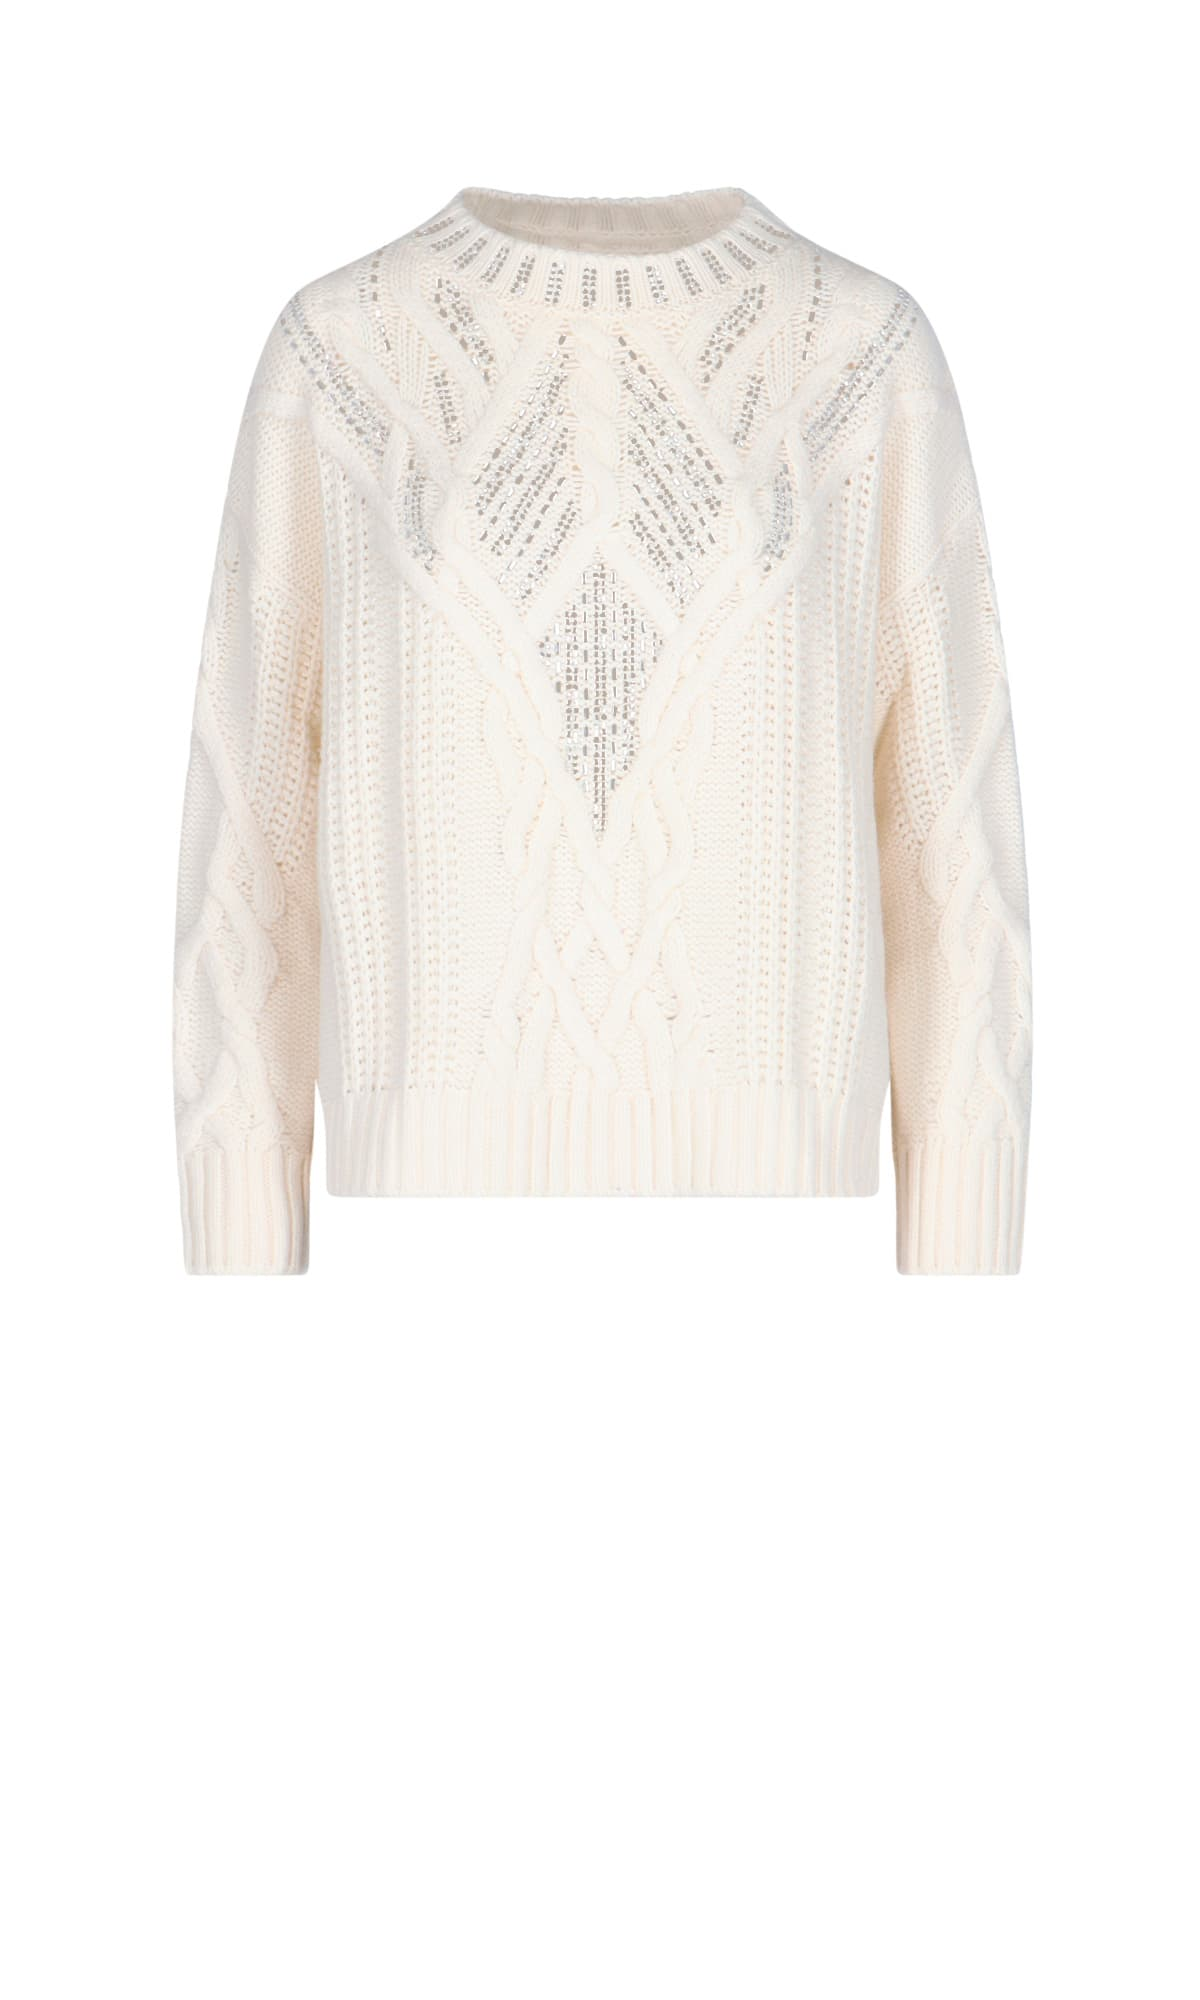 Ermanno Scervino BRAIDED SWEATER